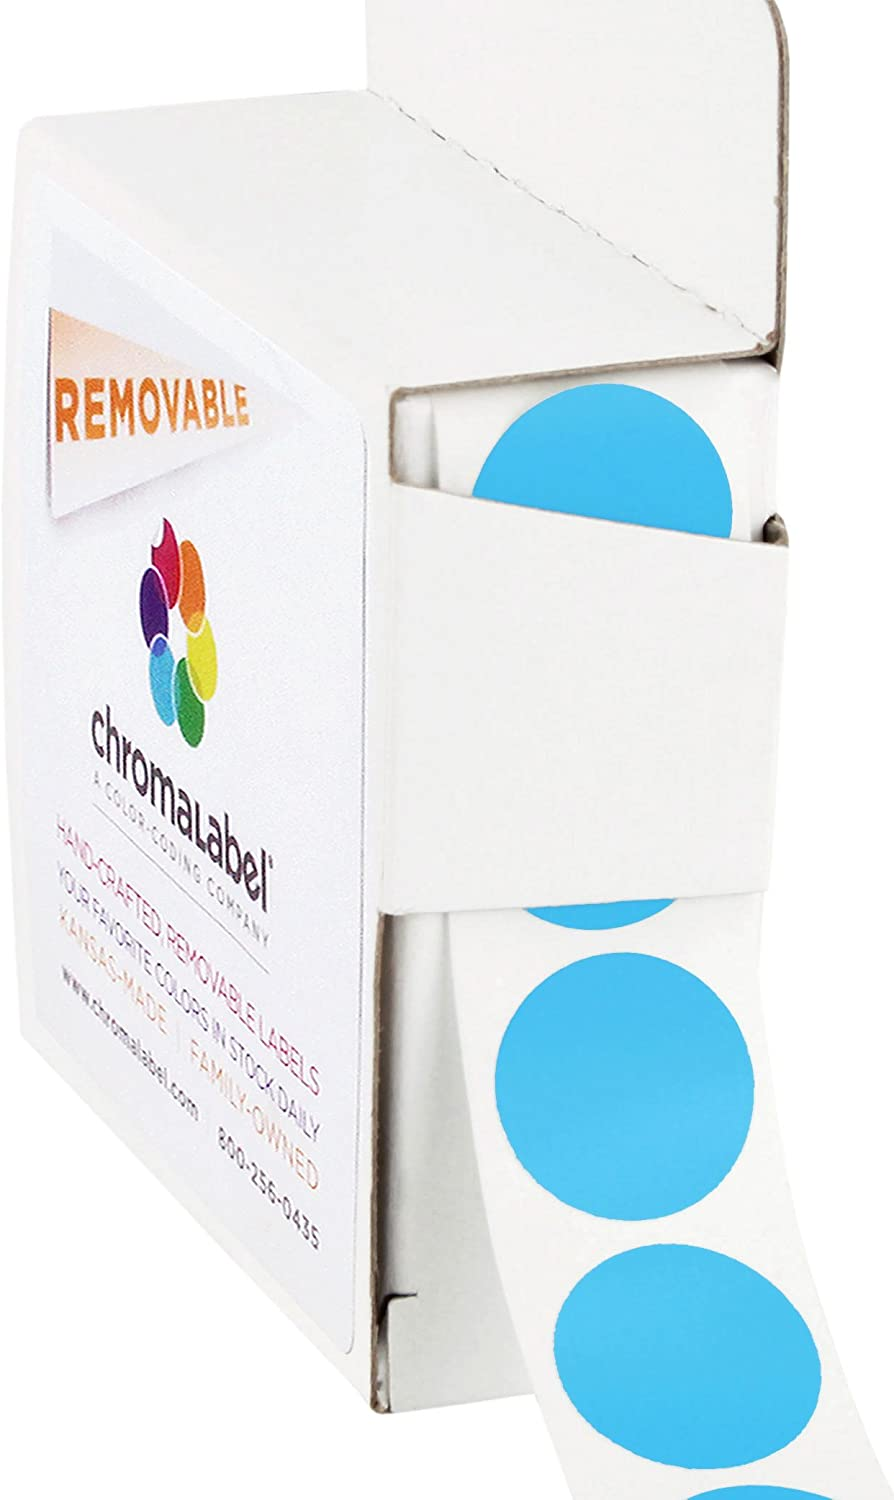 ChromaLabel 3/4 Inch Round Removable Color-Code Dot Stickers, 1000 per Dispenser Box, Light Blue